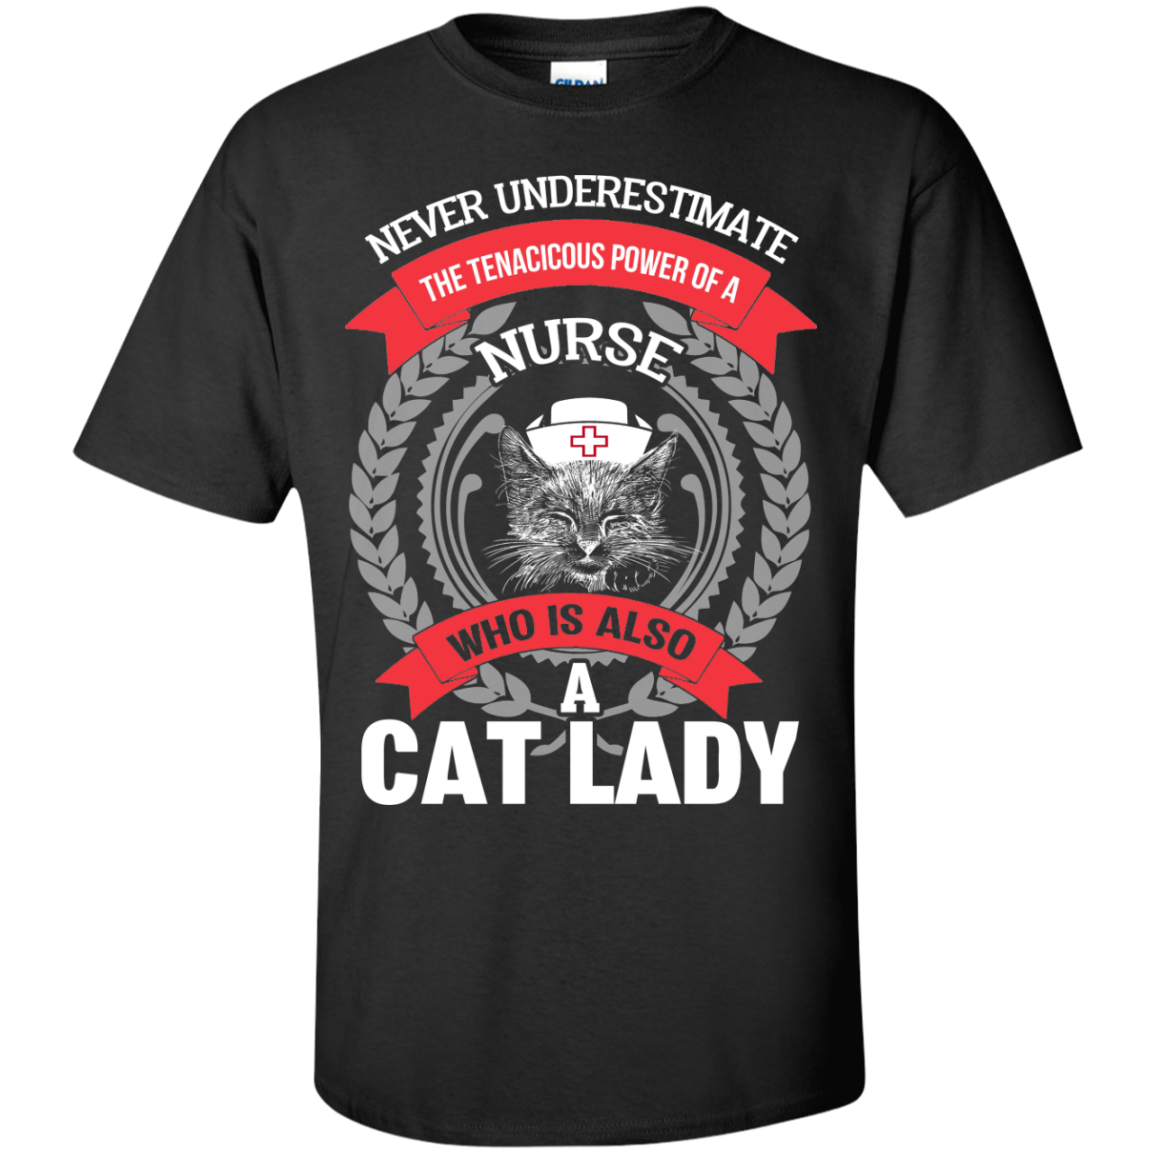 Never Underestimate The Tenacious Power Of A NURSE Who is Also A Cat Lady